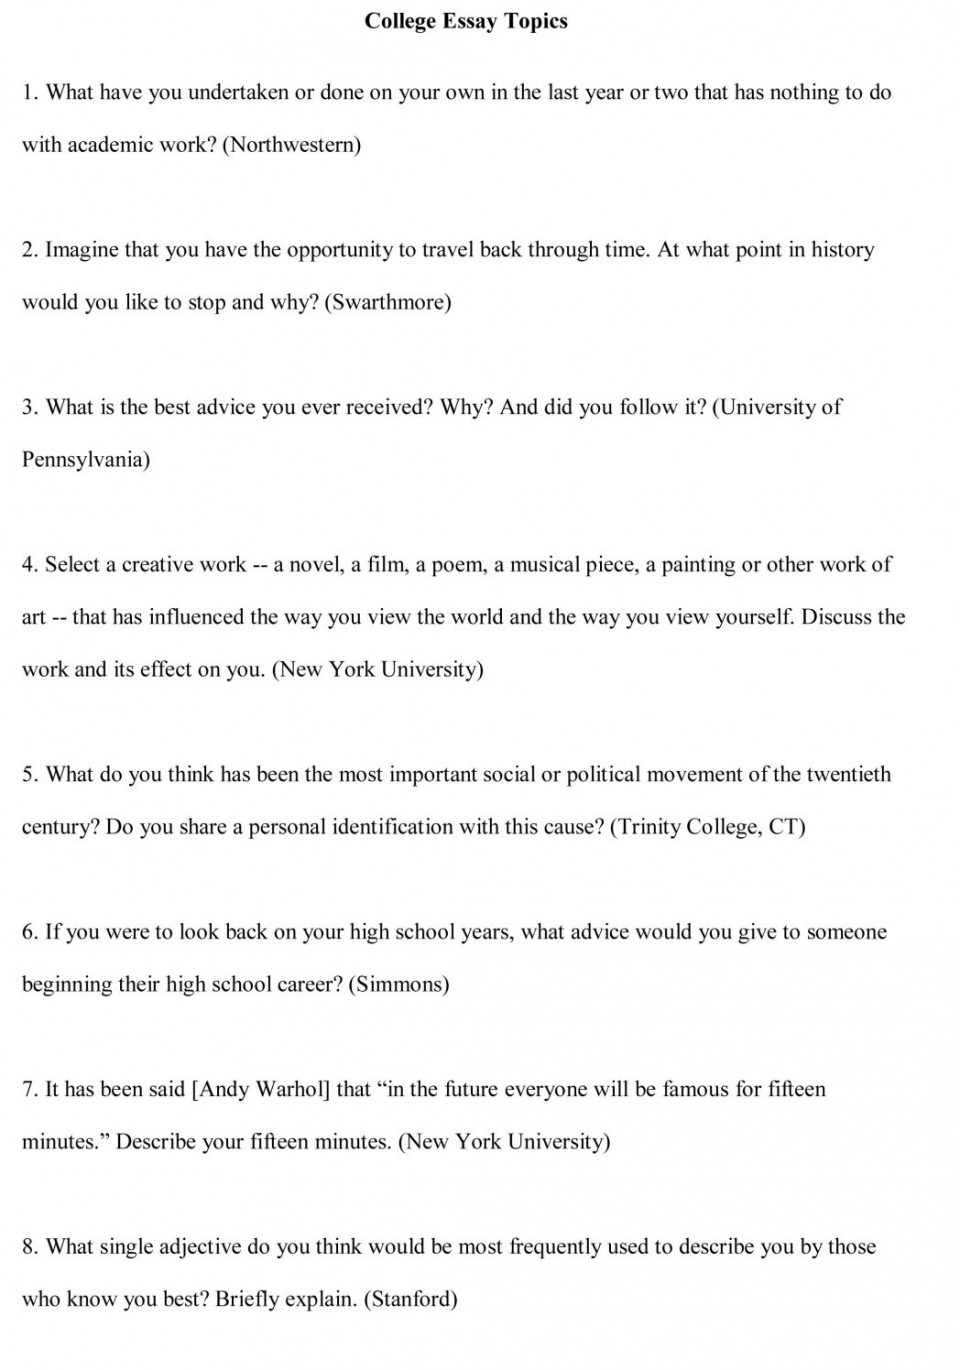 015 Essay Example Future Goal College Essays Online Resume Template Education Topics Free Sa Educational Goals And Objectives Shocking Flight Attendant For High School 500 Words 960